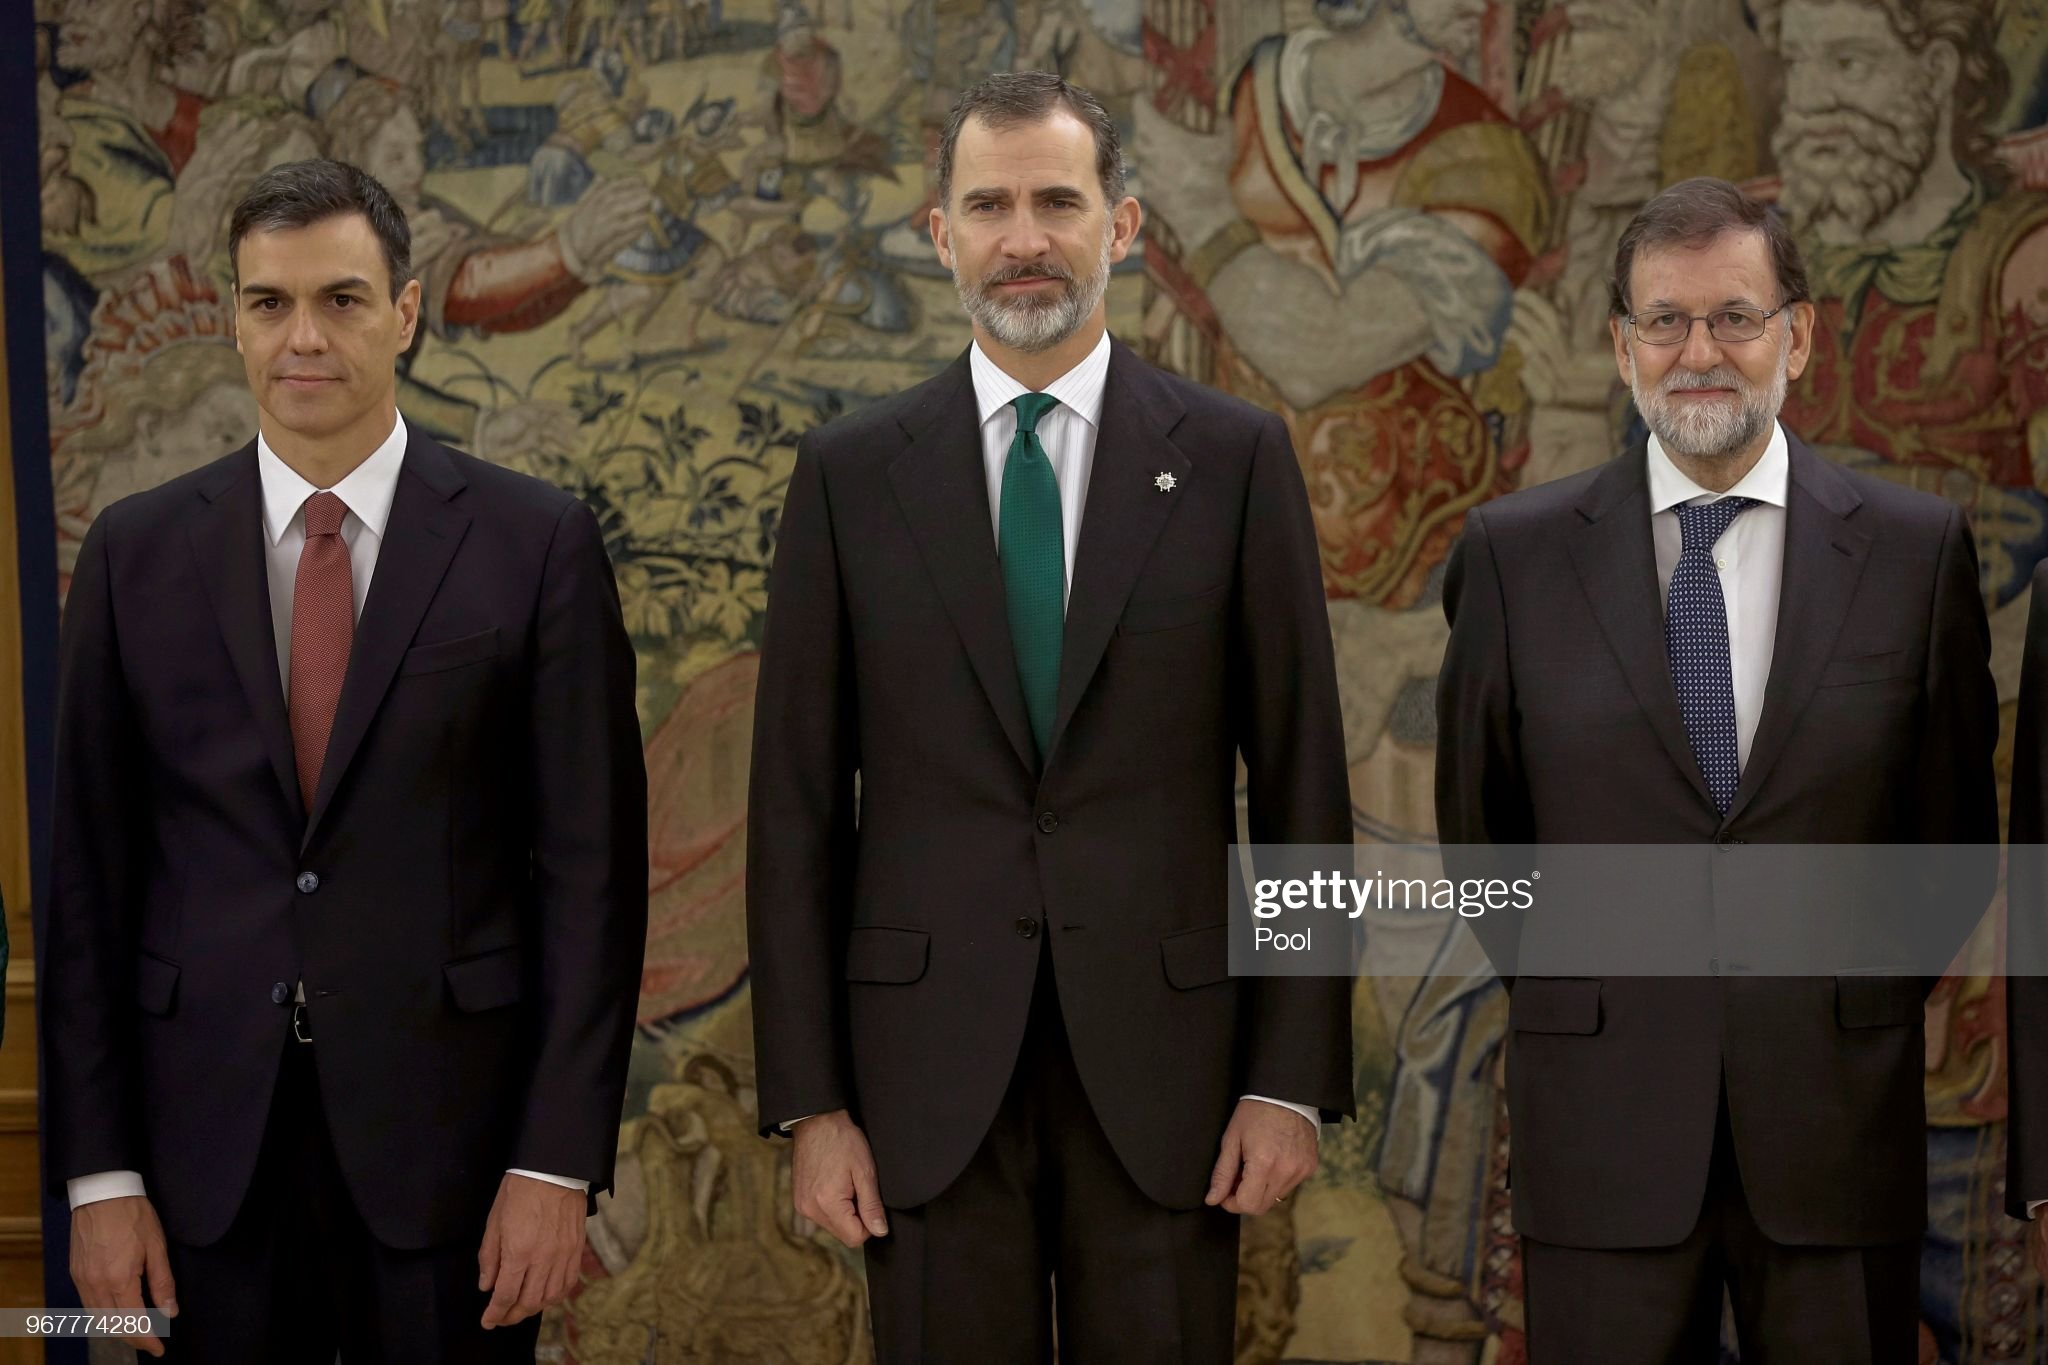 ¿Cuánto mide Pedro Sánchez? - Altura: 1,89 - Real height - Página 2 Spains-new-prime-minister-pedro-sanchez-king-felipe-vi-of-spain-and-picture-id967774280?s=2048x2048